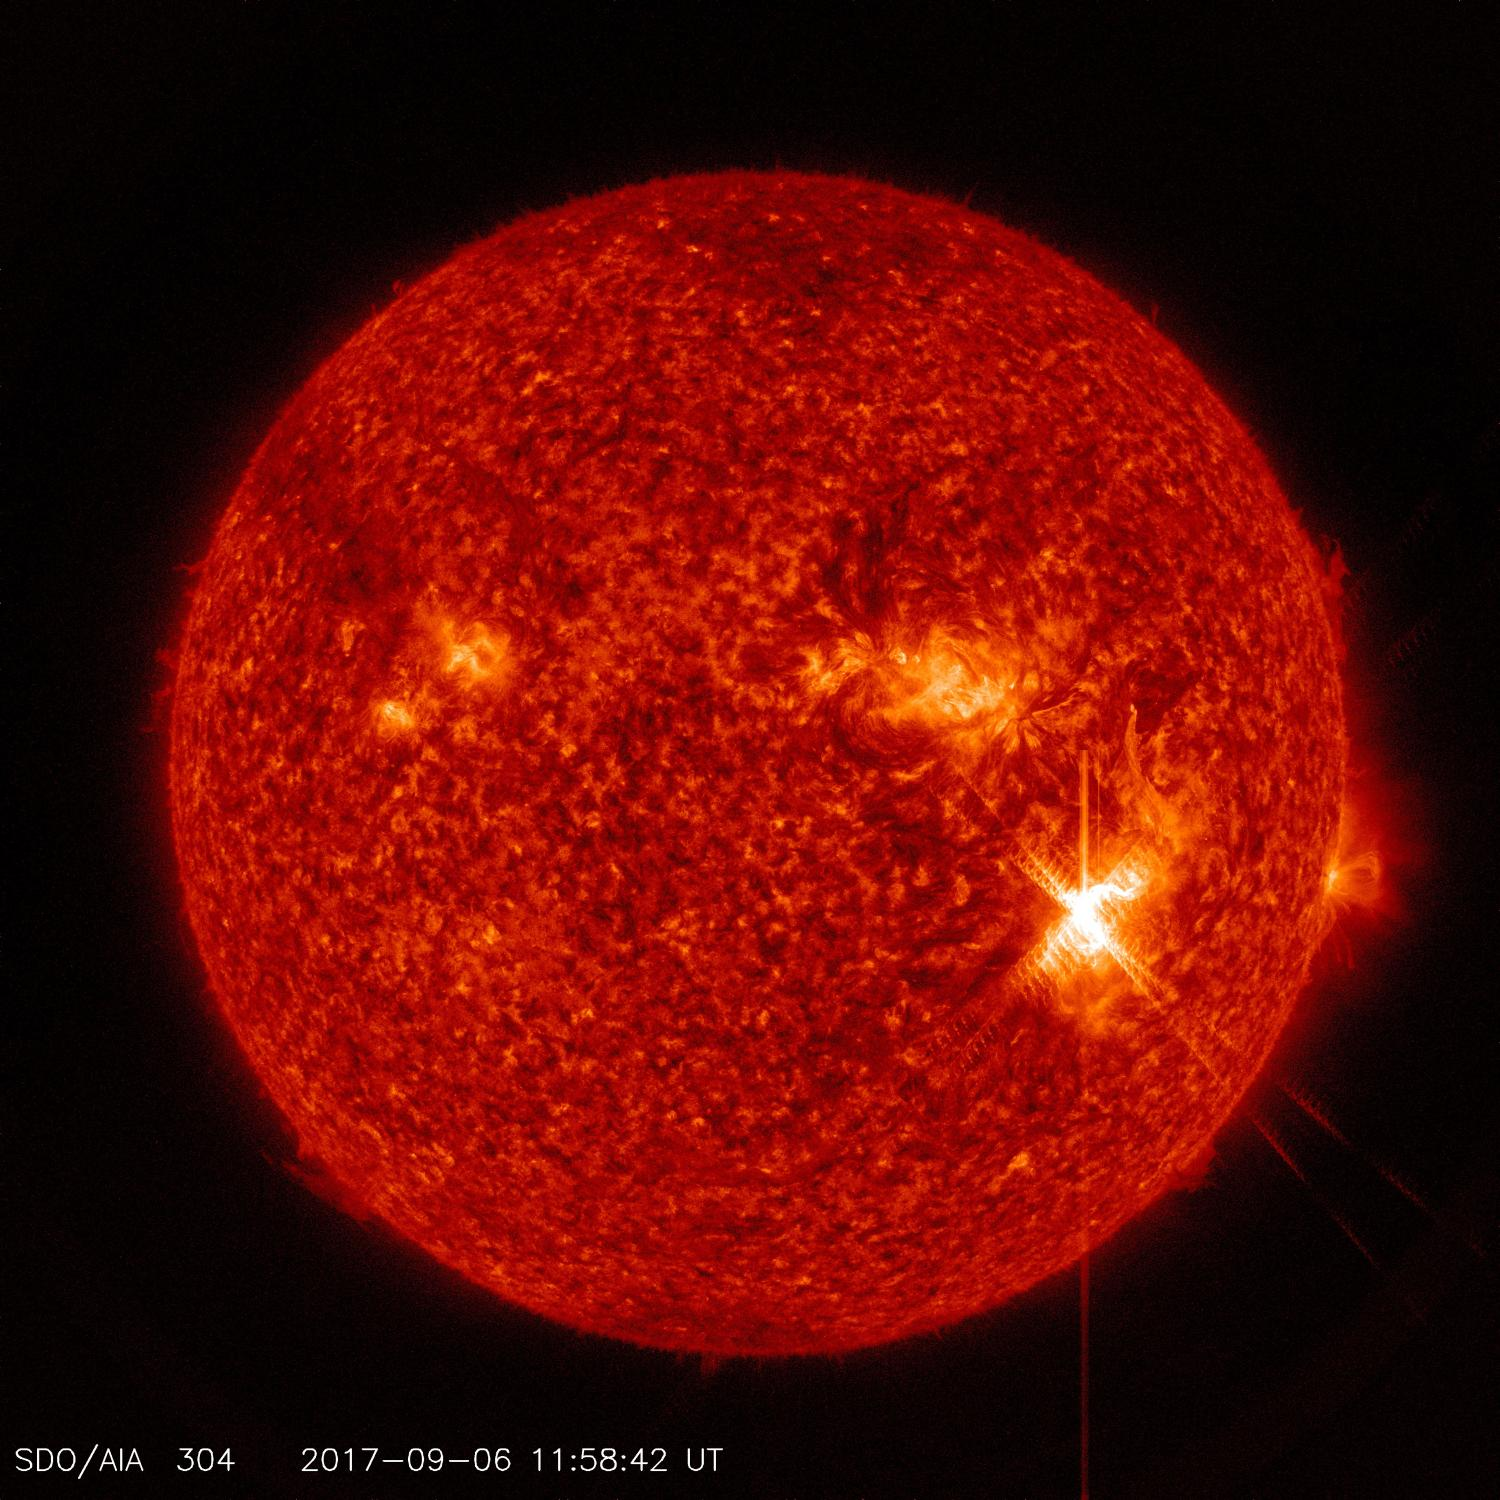 Two significant solar flares imaged by NASA's SDO